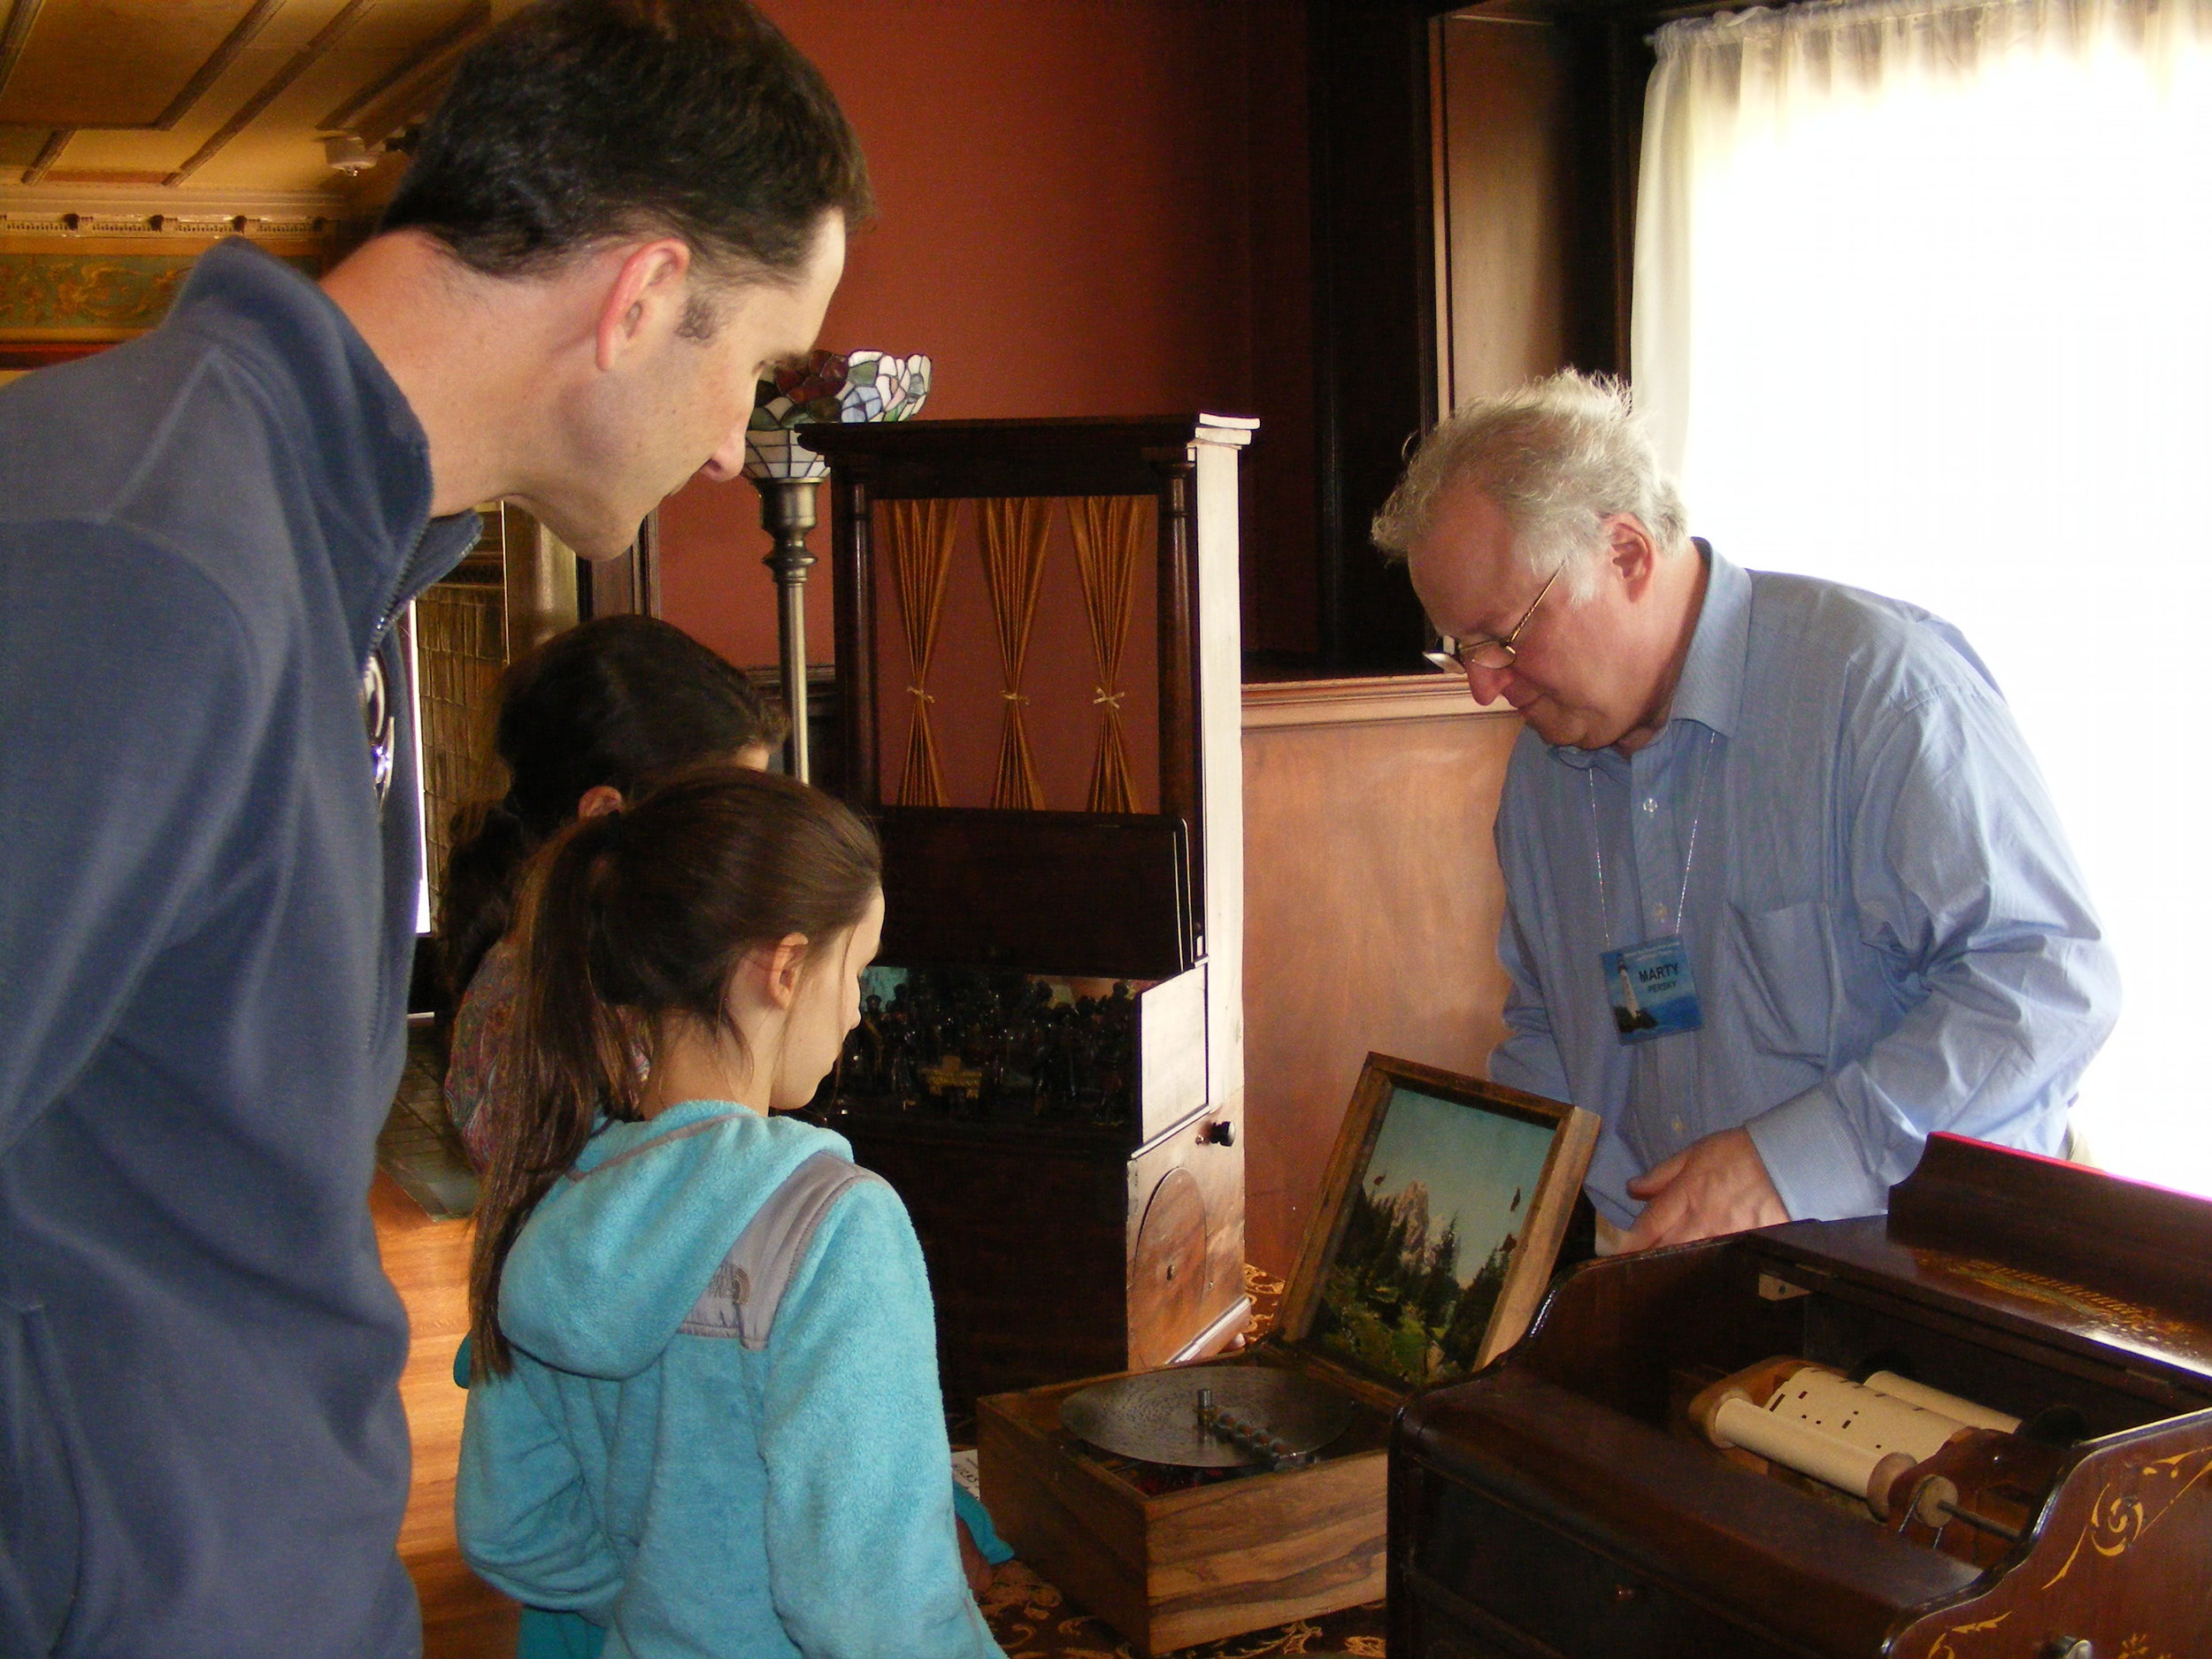 Demonstrating instruments for the public at the former residence of Herbert Mills of the Mills Novelty Company.